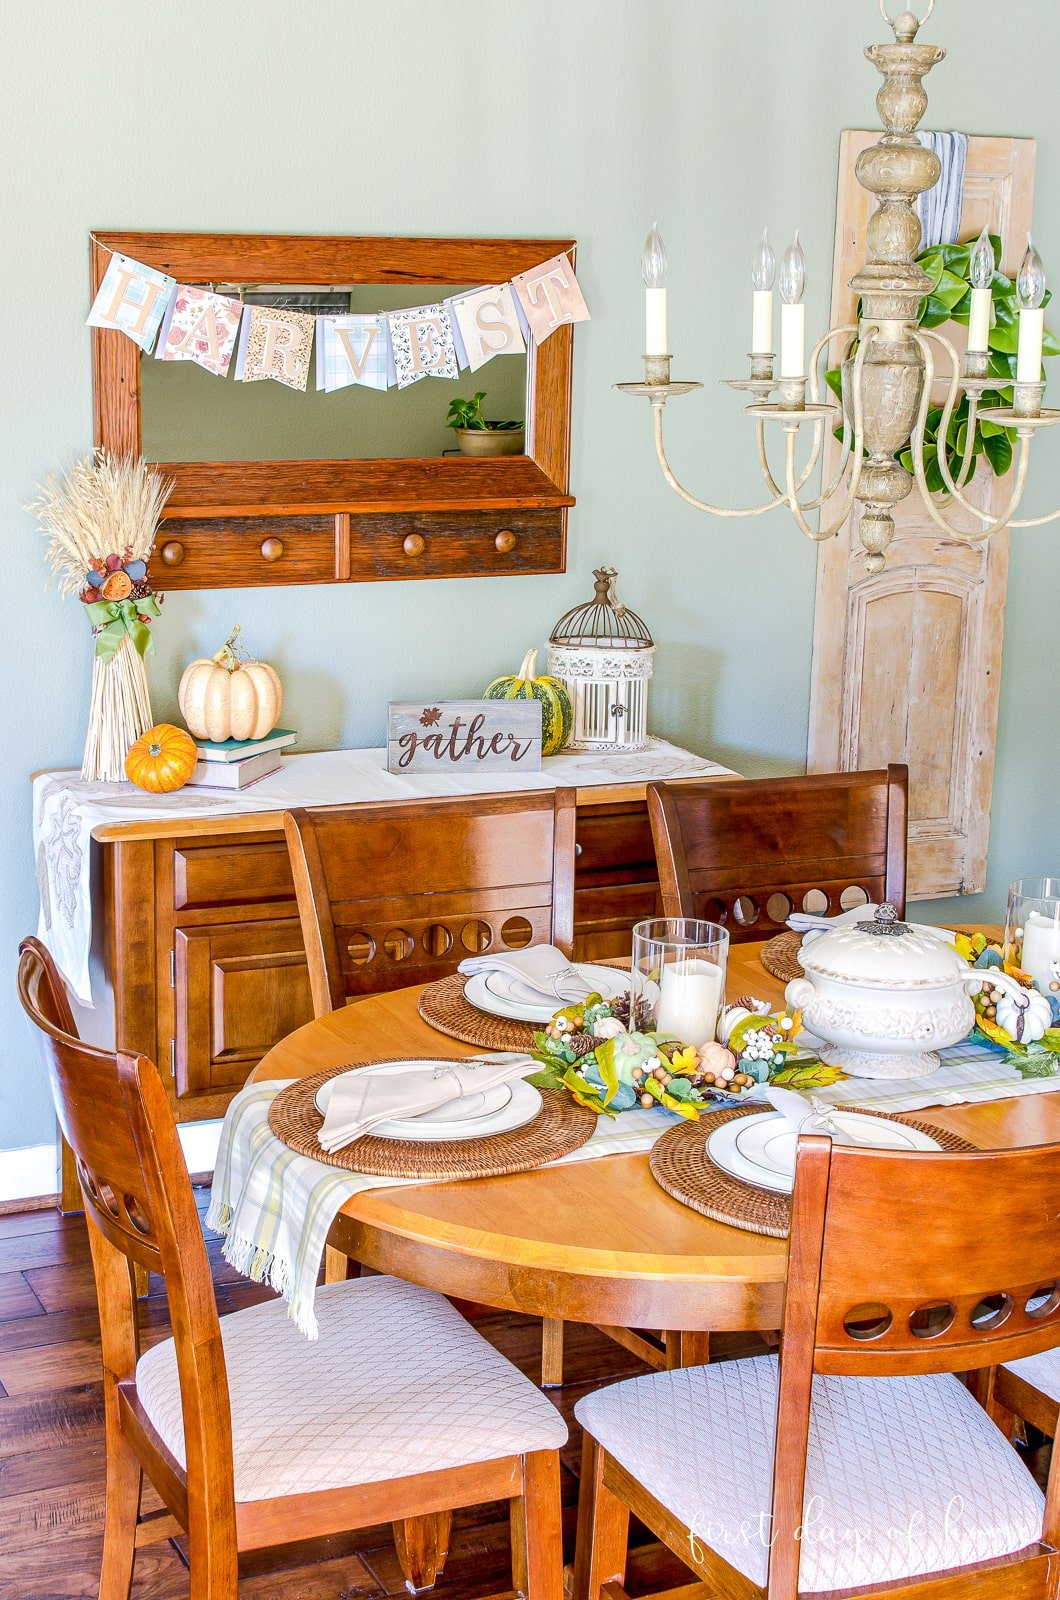 Breakfast room decorated for fall with green and peach color palette